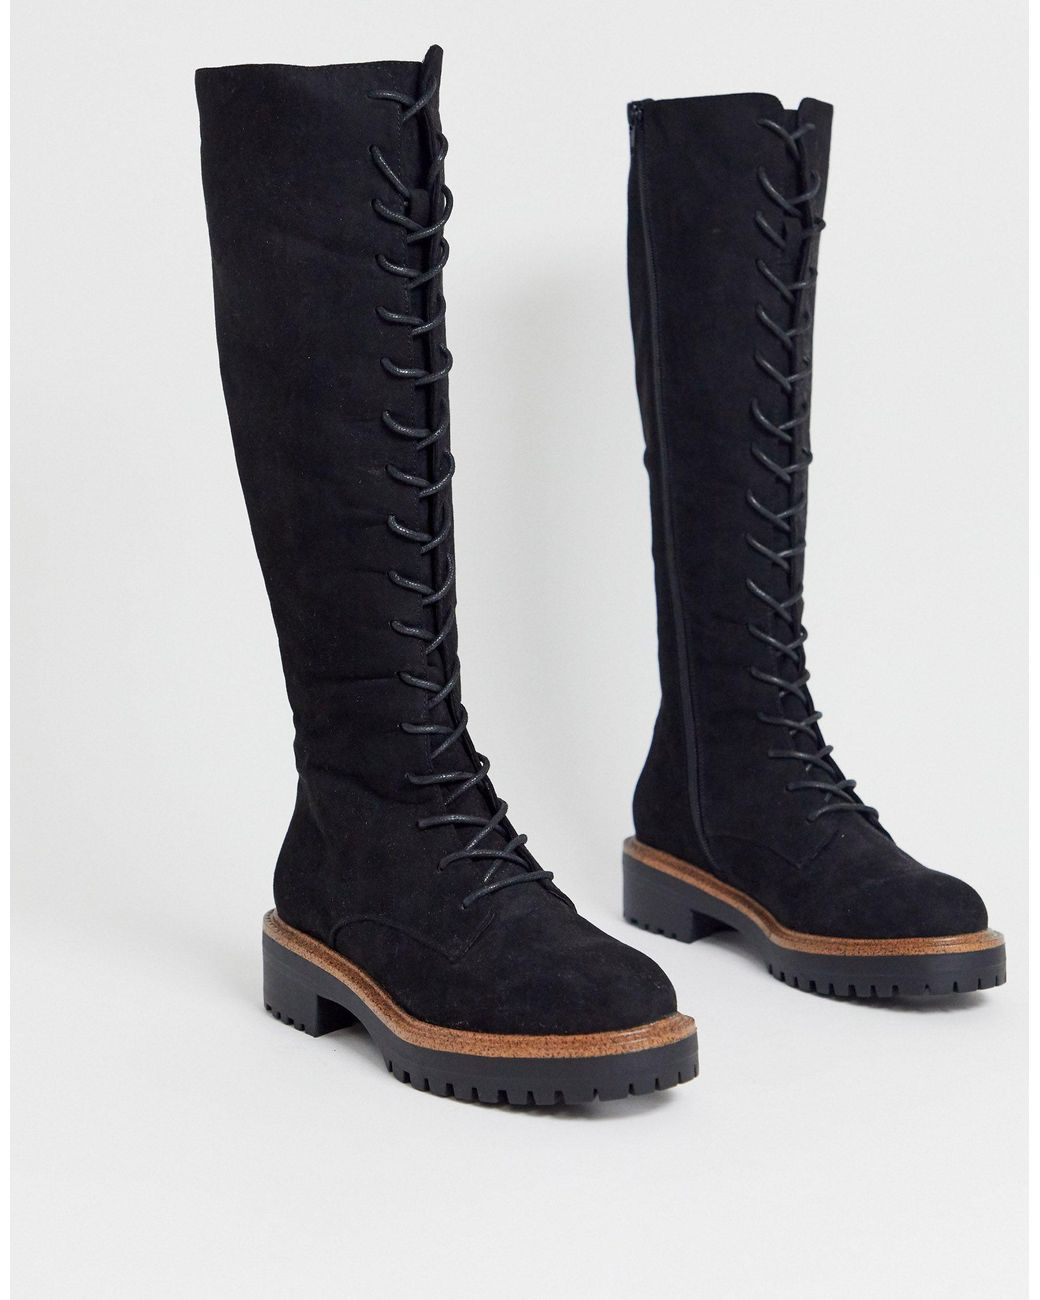 ASOS Courtney Chunky Lace Up Knee High